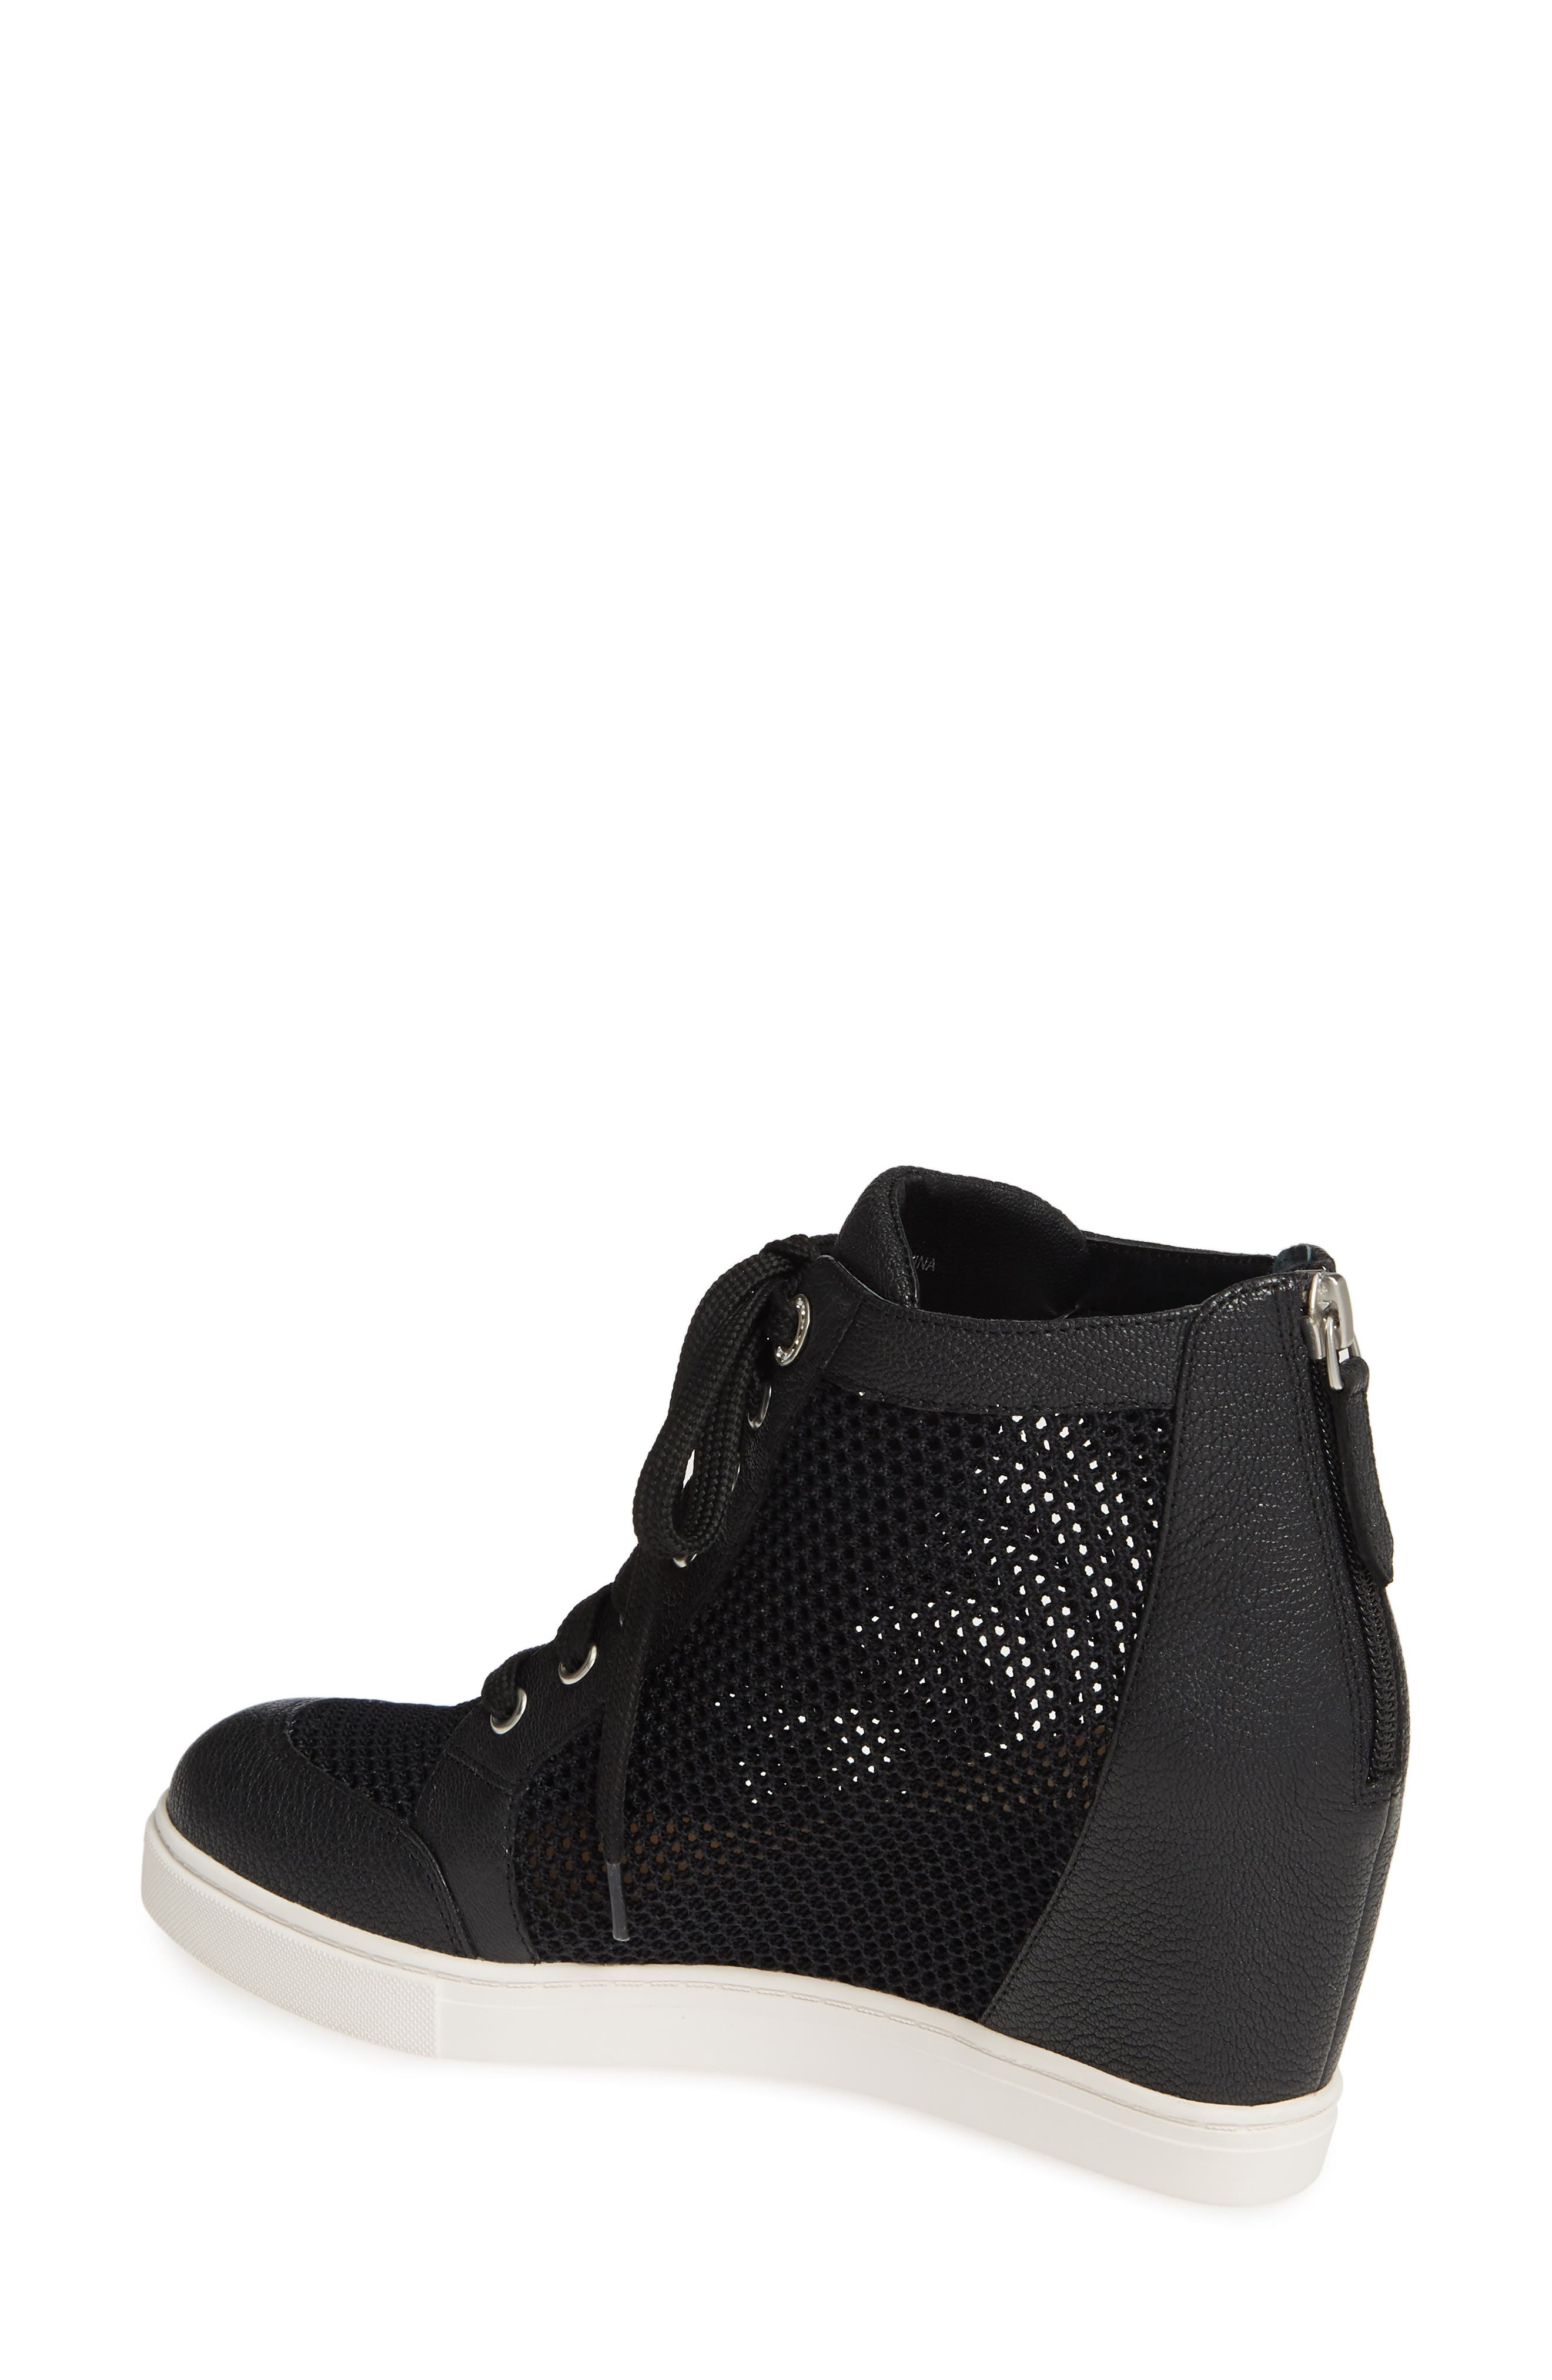 LINEA PAOLO, Finian Mesh Wedge Sneaker Bootie, Alternate thumbnail 2, color, BLACK LEATHER